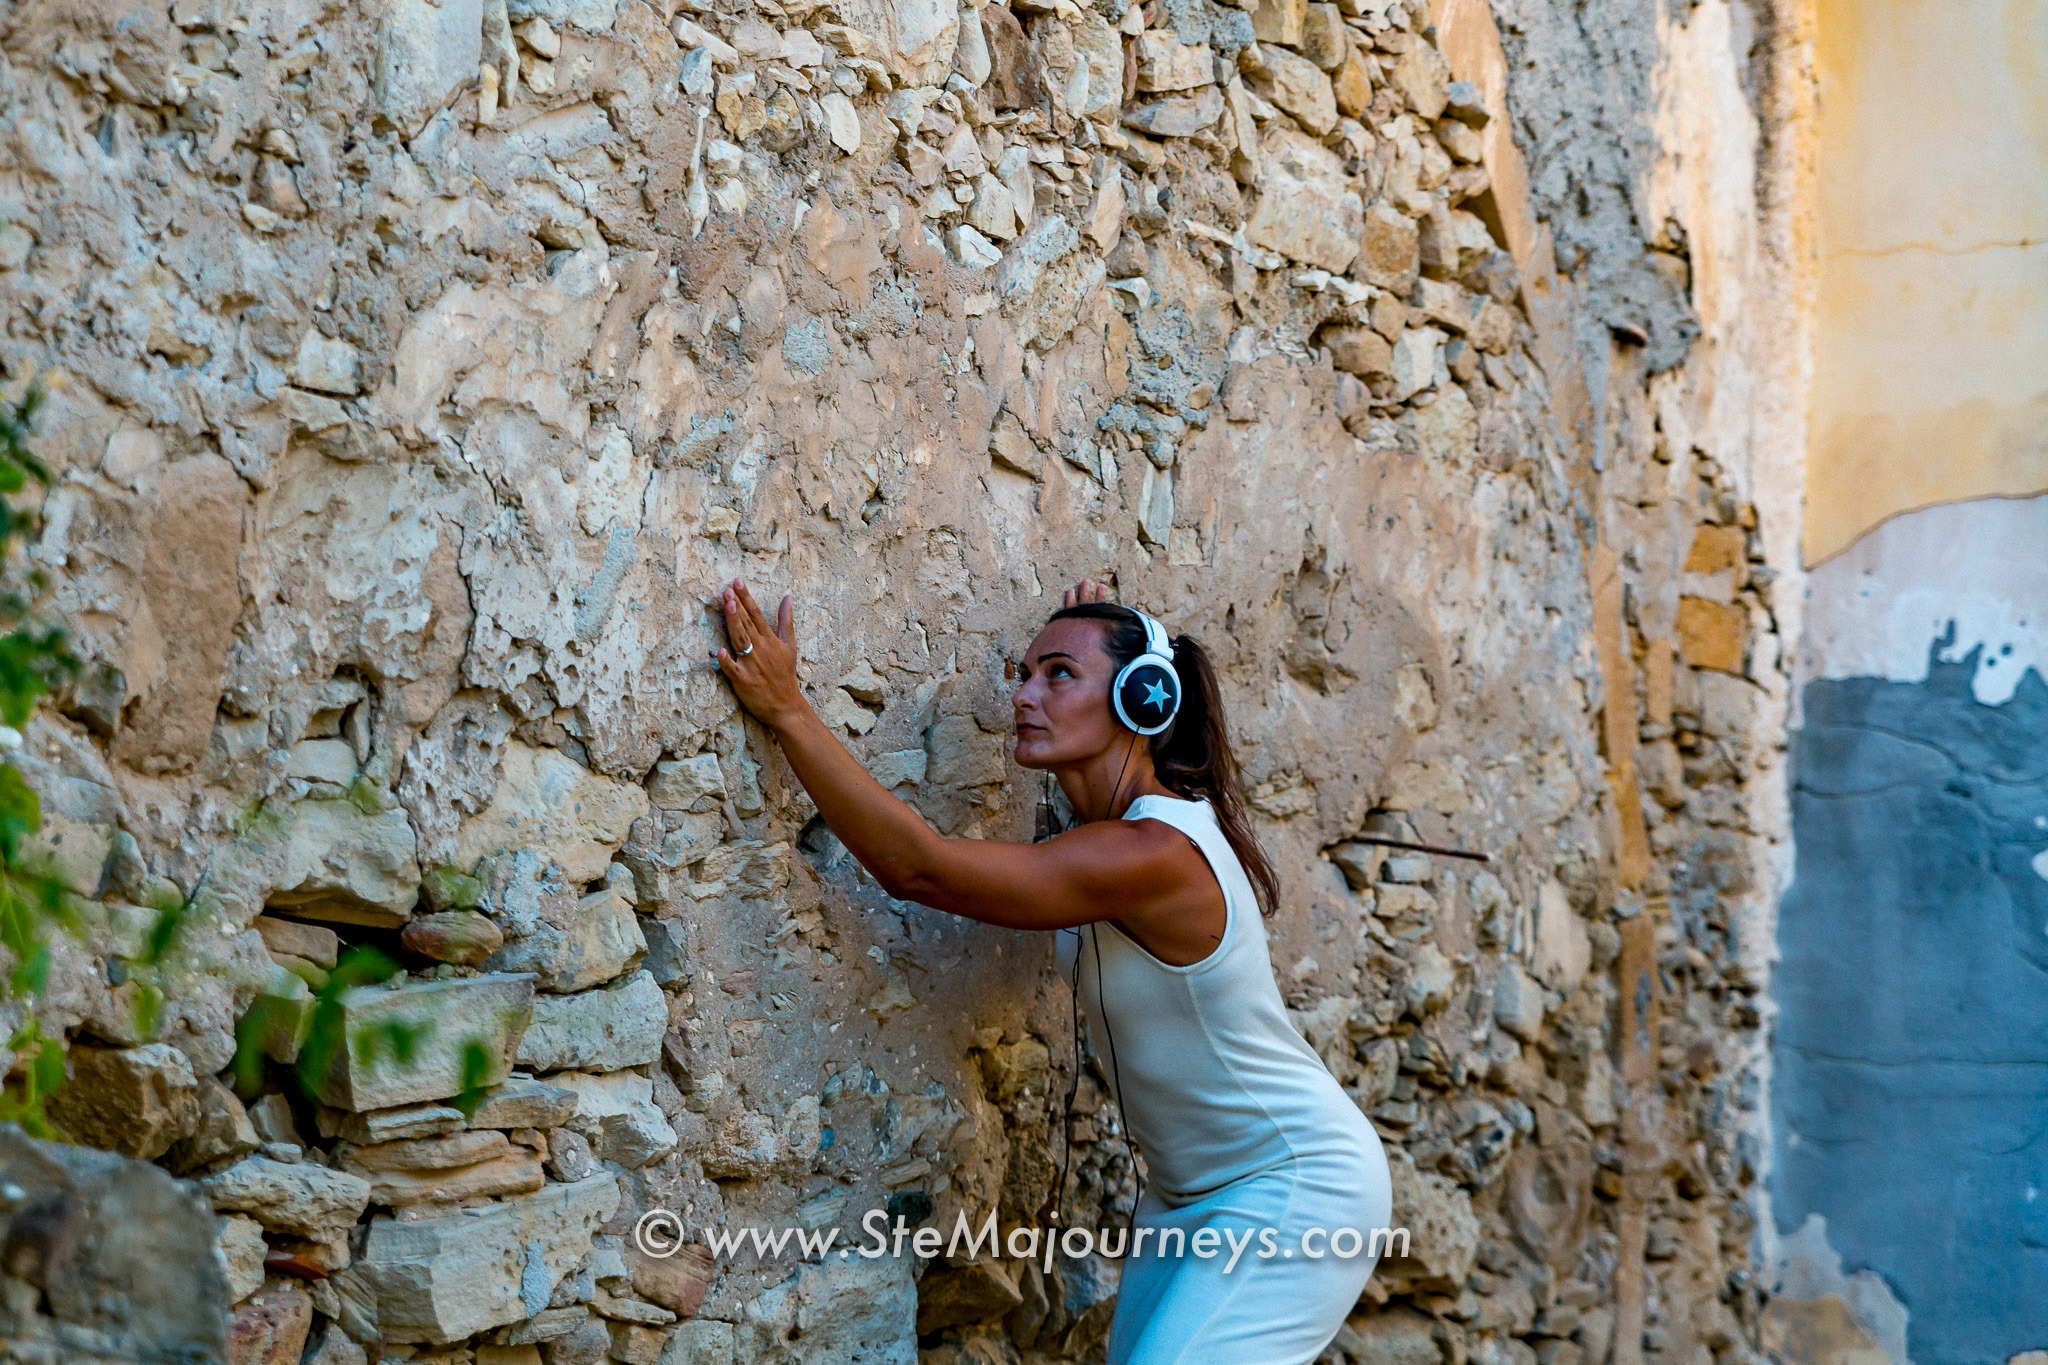 A woman (white dress, long brown hair, headphones on) is touching a stone wall that seems to be in the Mediterranean